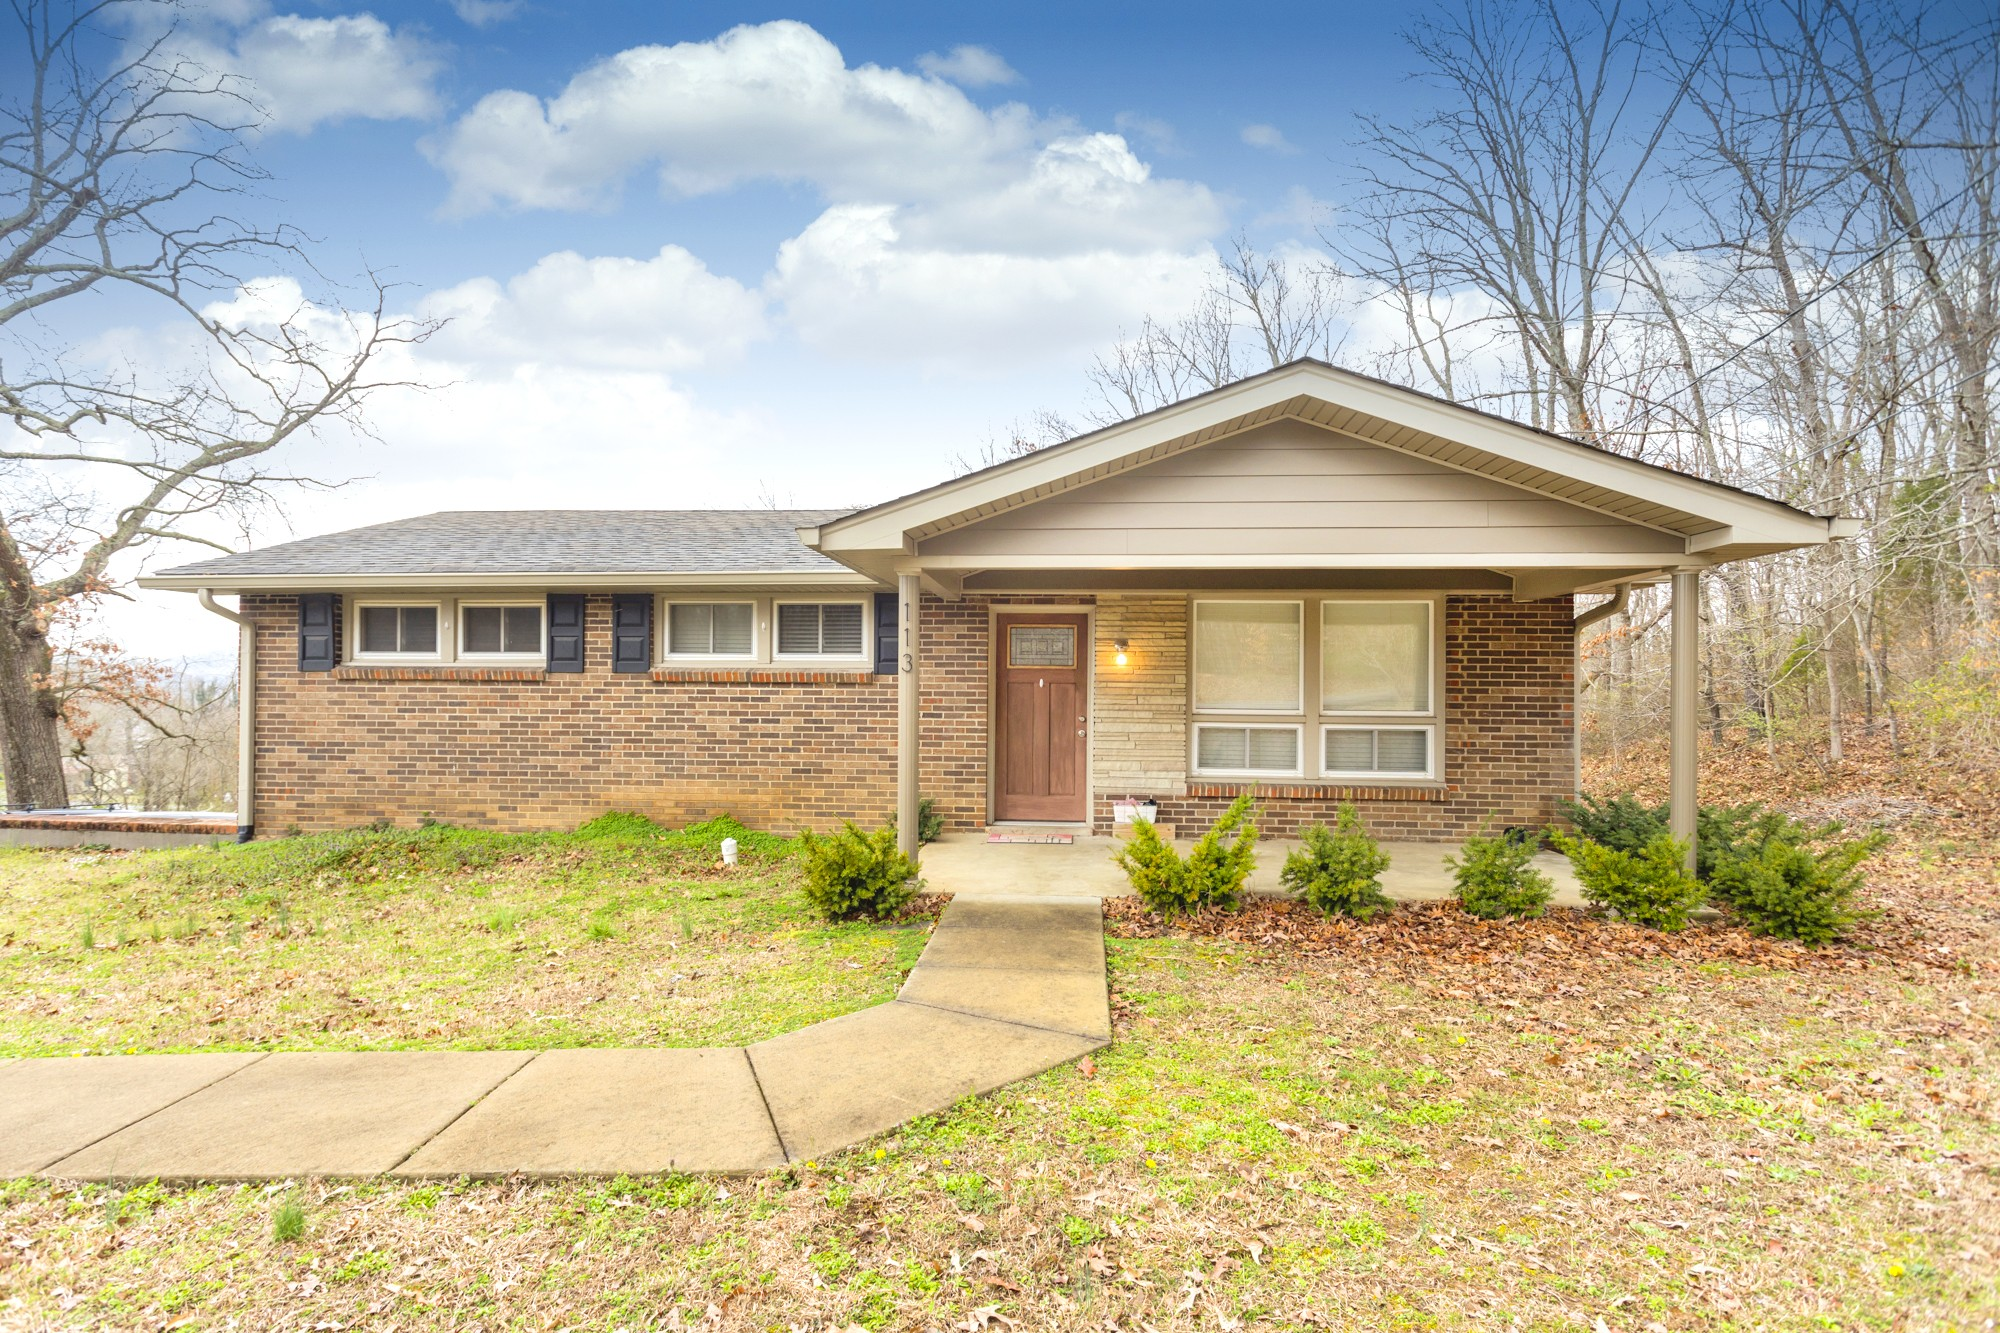 113 Valley View St, Ashland City, TN 37015 - Ashland City, TN real estate listing